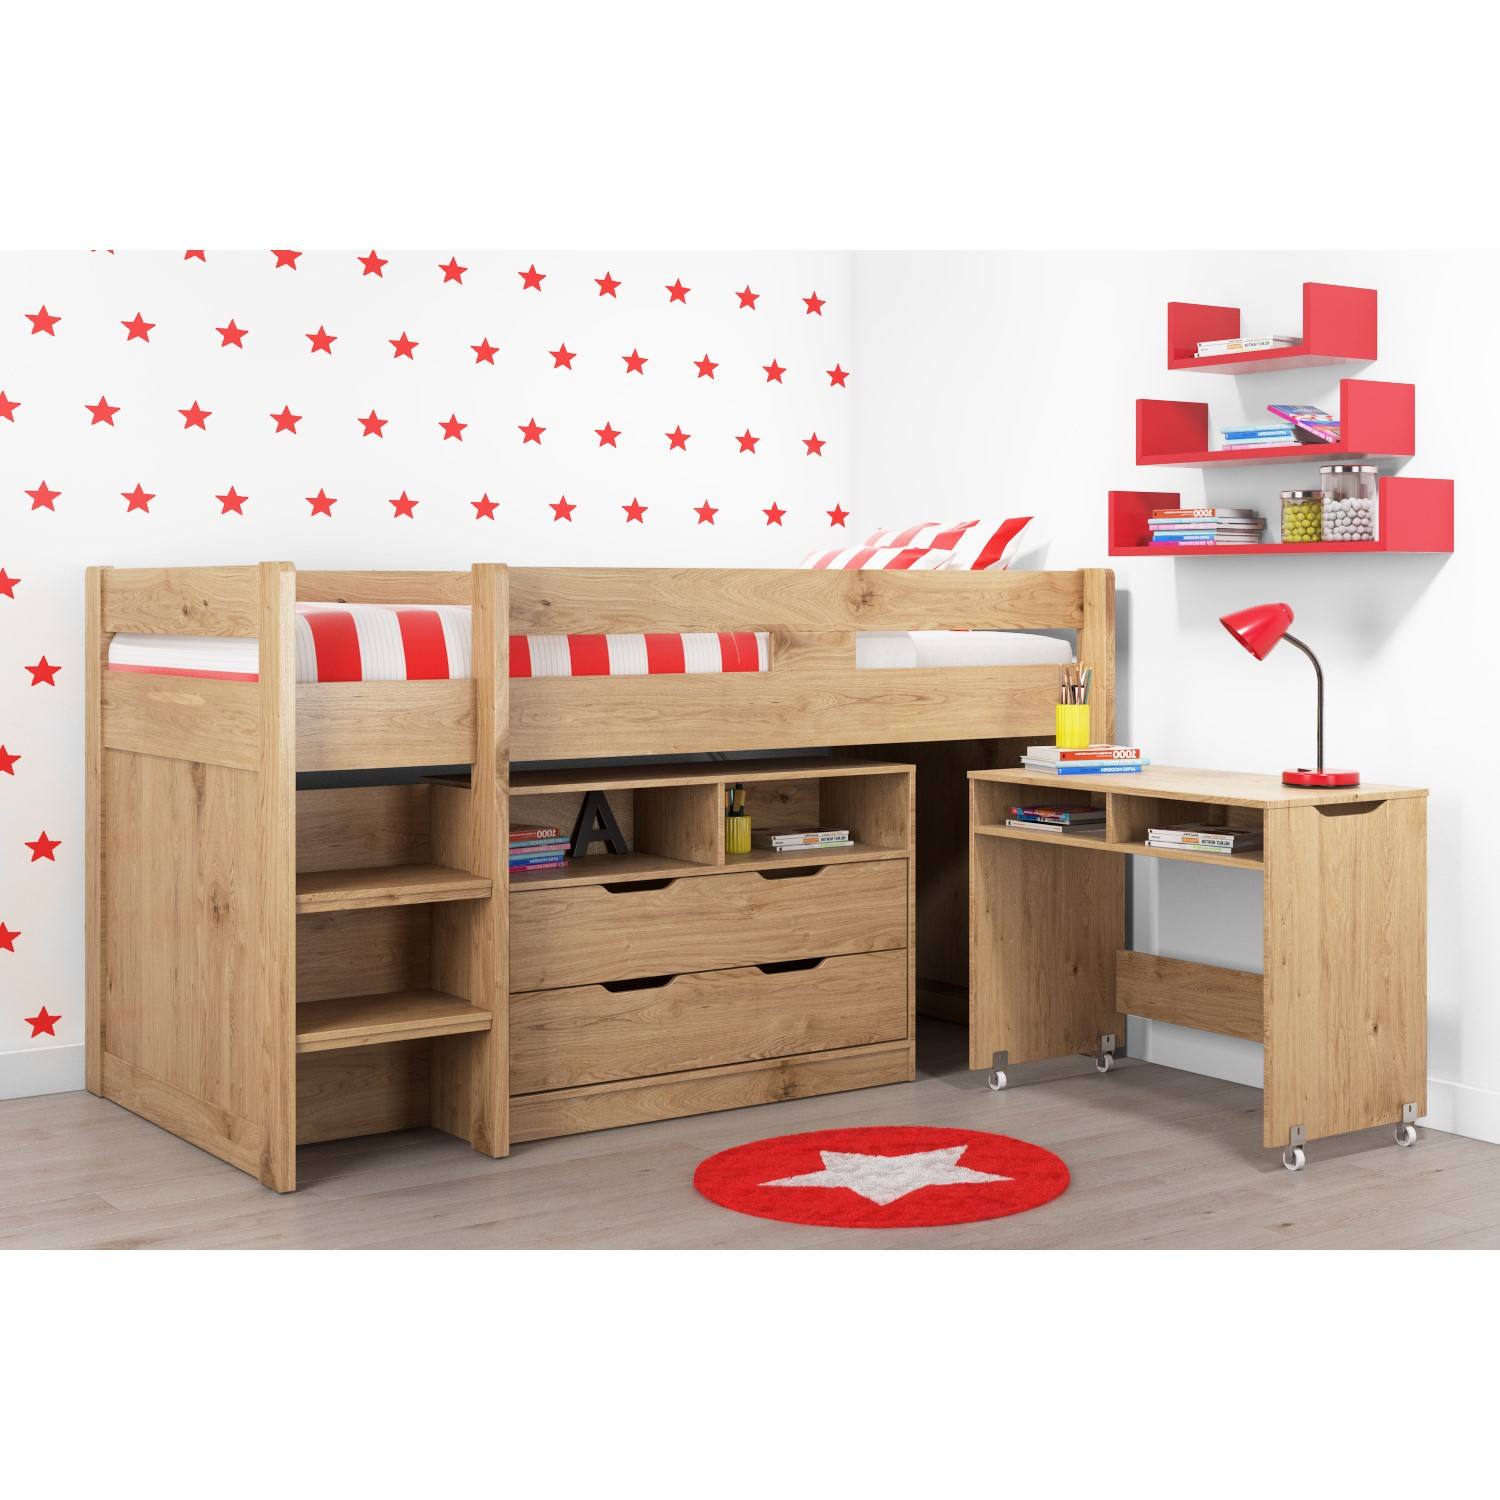 Cosmo Mid Sleeper Bed in Oak with Pull Out Desk | eBay